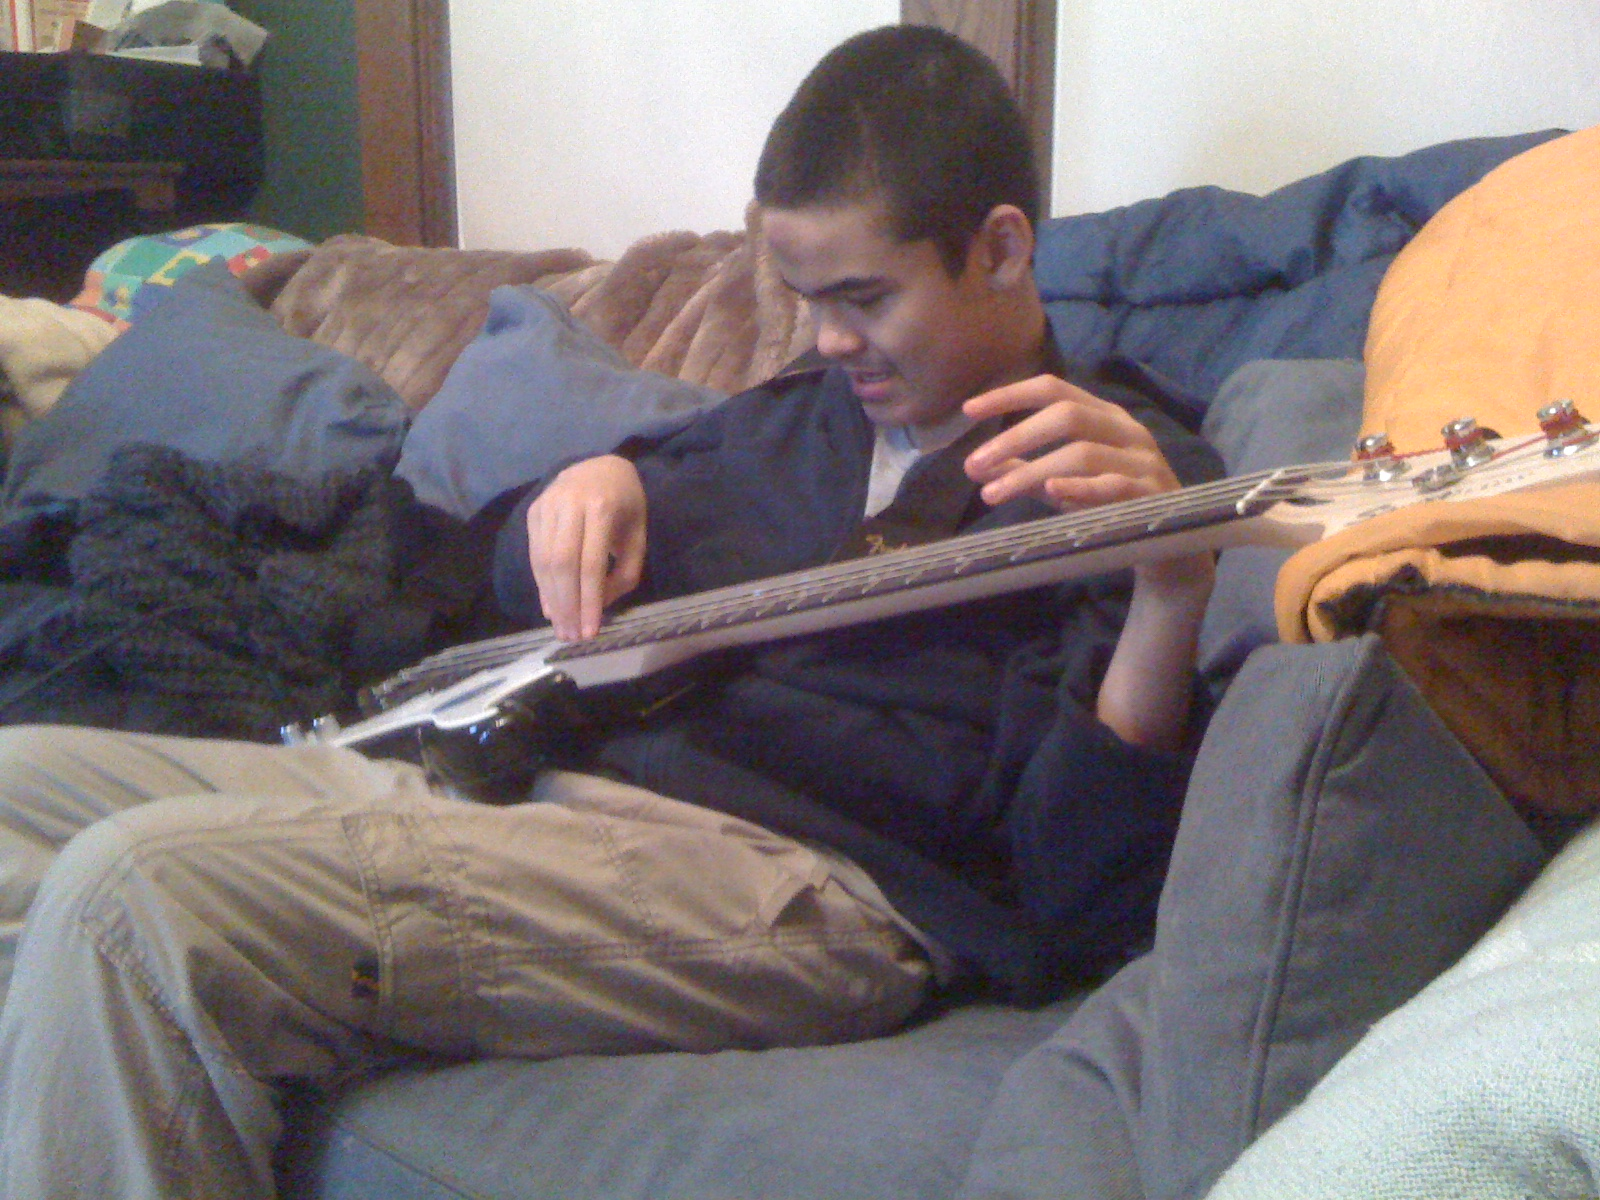 Charlie strumming his new bass guitar